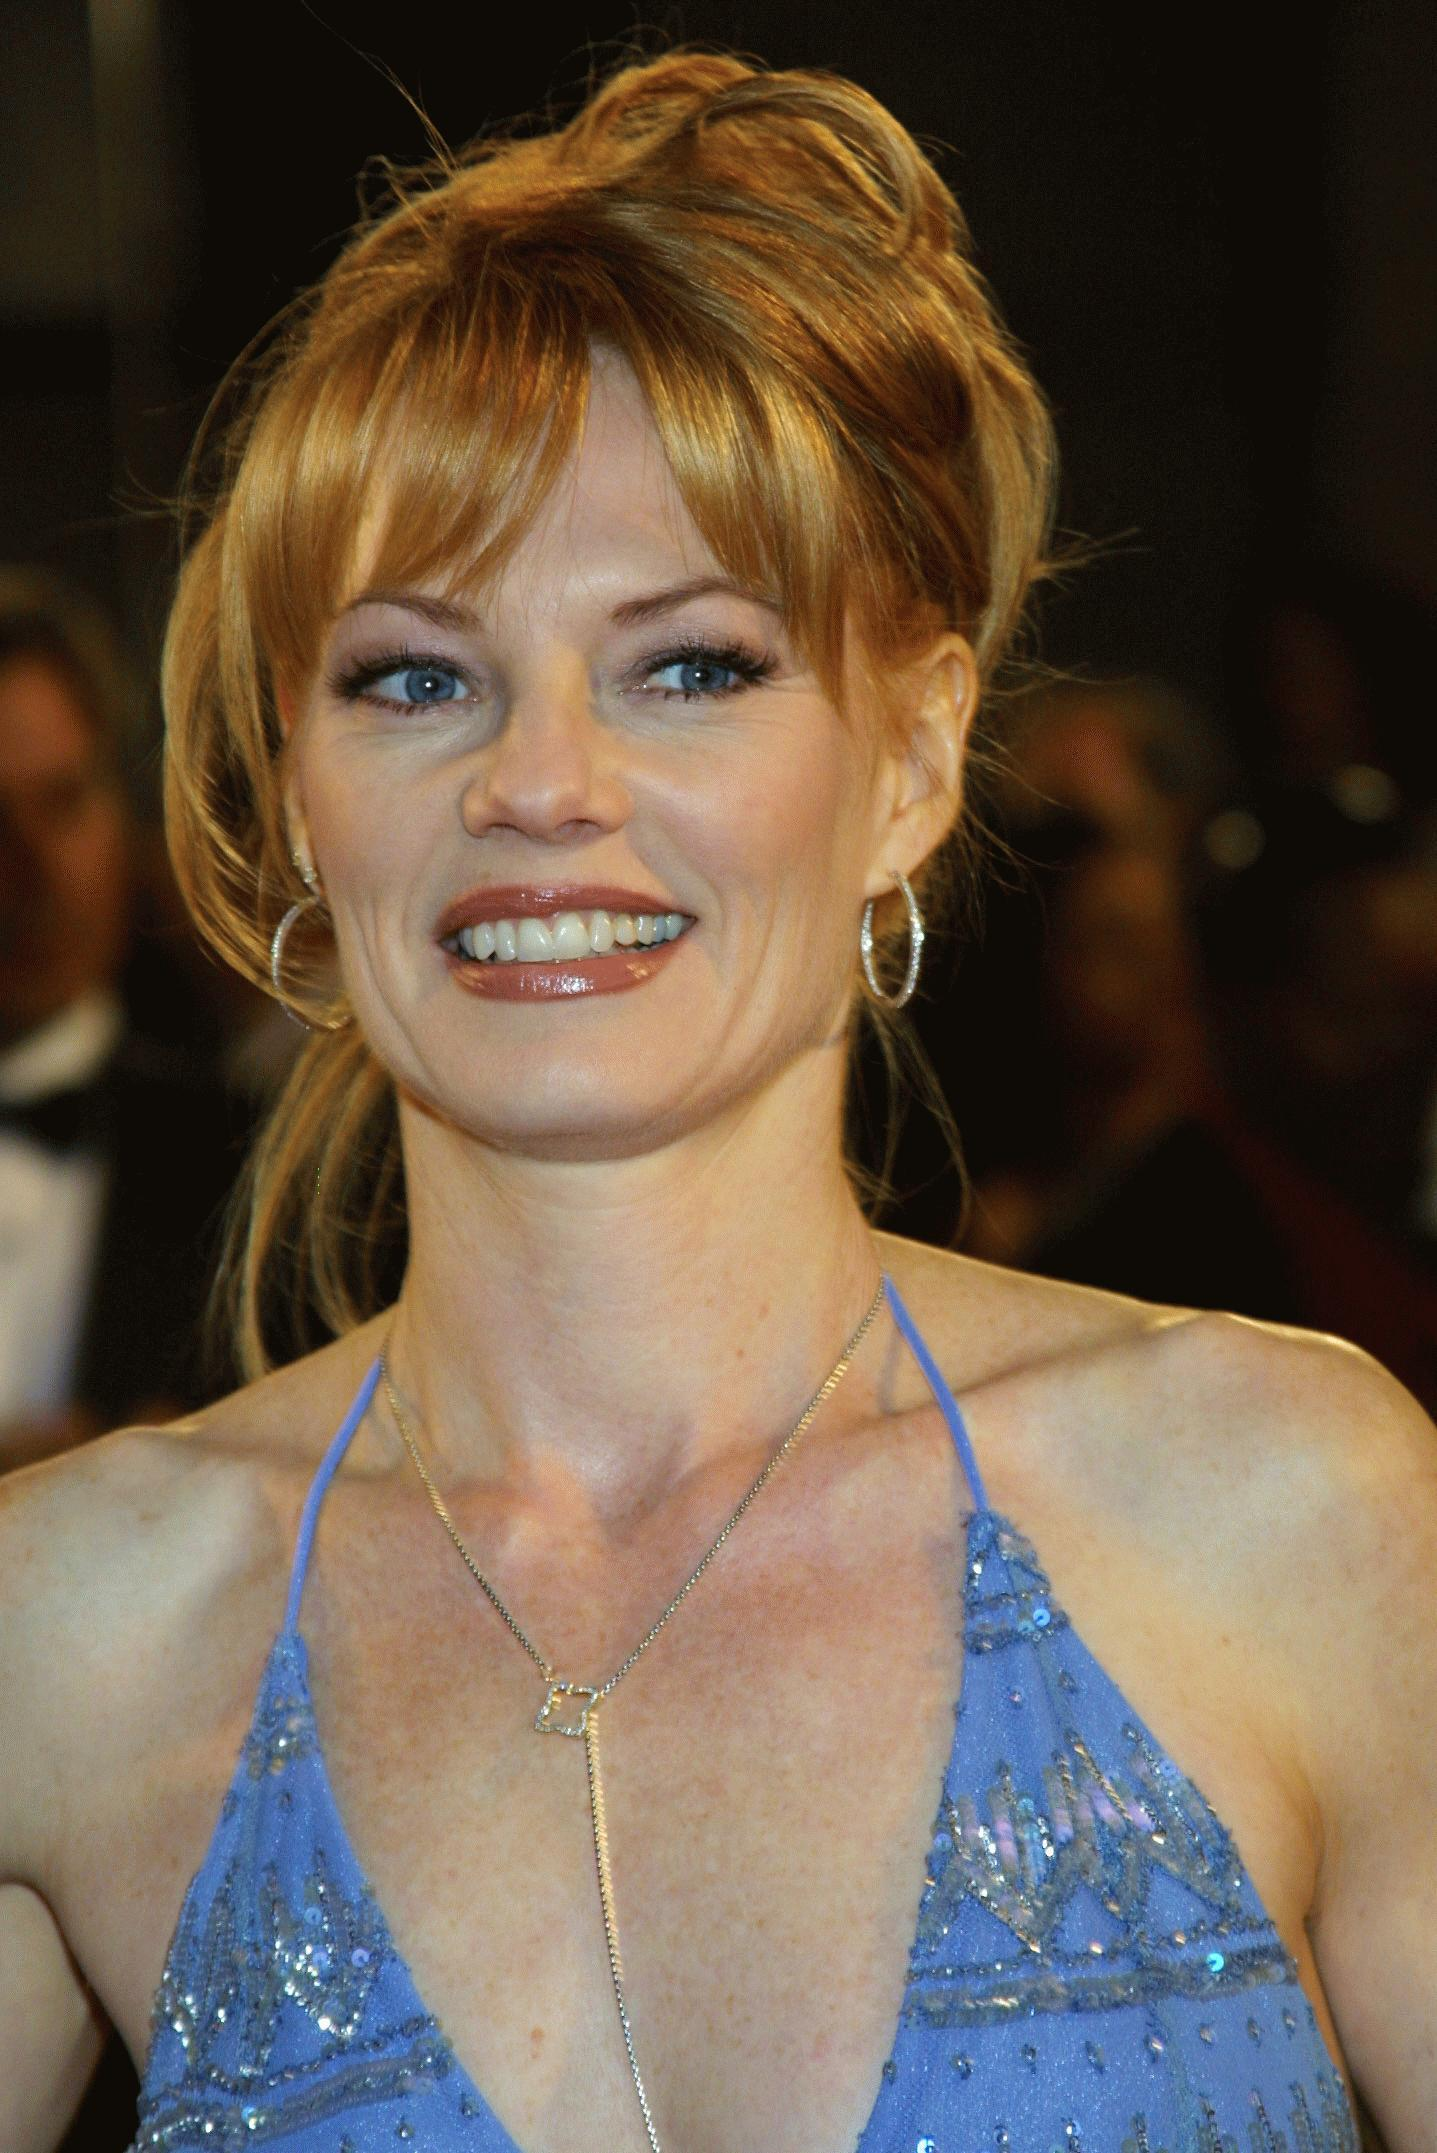 Marg Helgenberger Images Marg 2001 Espy Awards February 12 2001 Hd Wallpaper And Background Photos